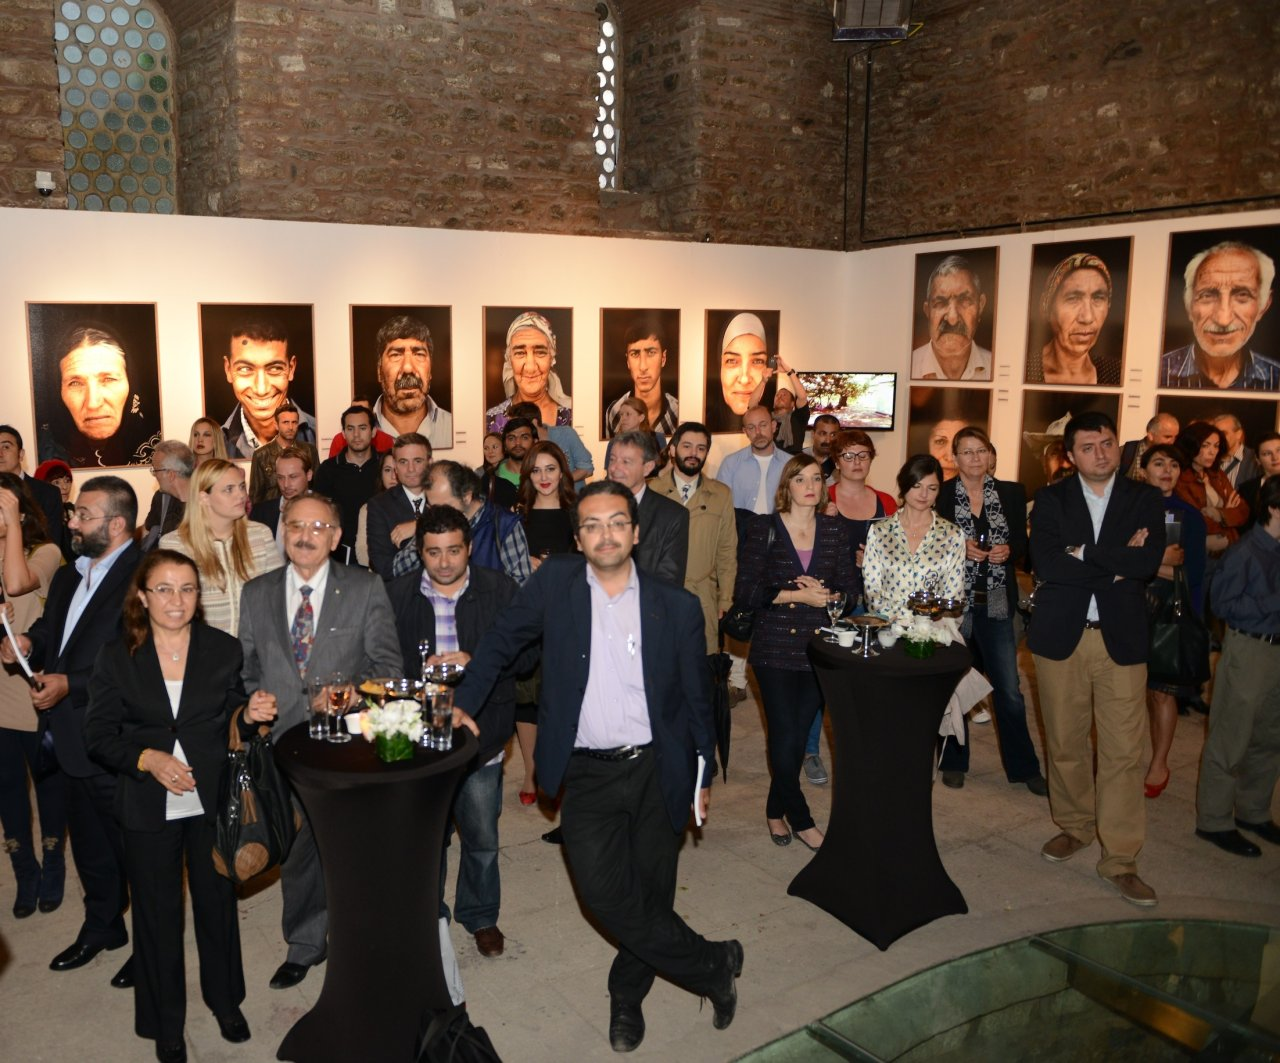 Istanbul hosts photo exhibition dedicated to Nagorno-Karabakh conflict's victims (PHOTO)